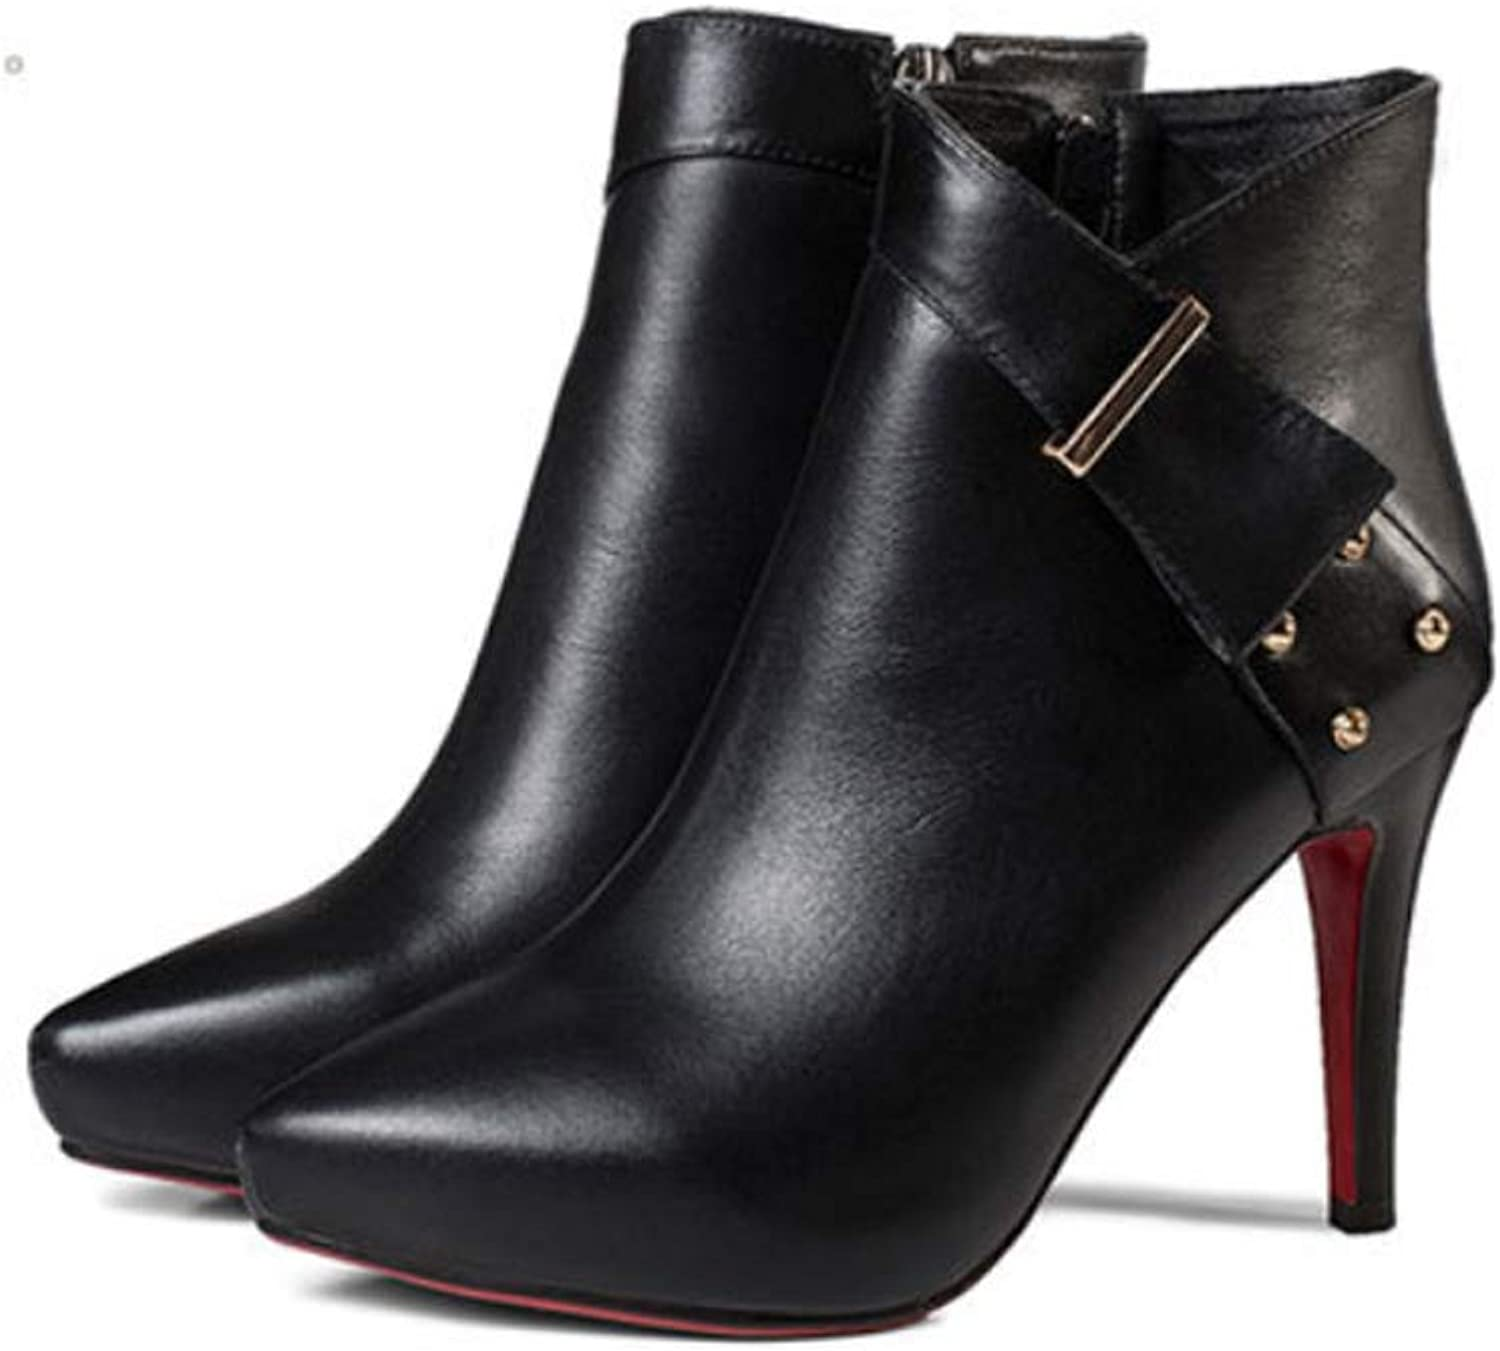 Women's shoes Platform High Heel Stiletto Ankle Boots Winter Zip Ladies Mid Calf Boots for Fall Winter